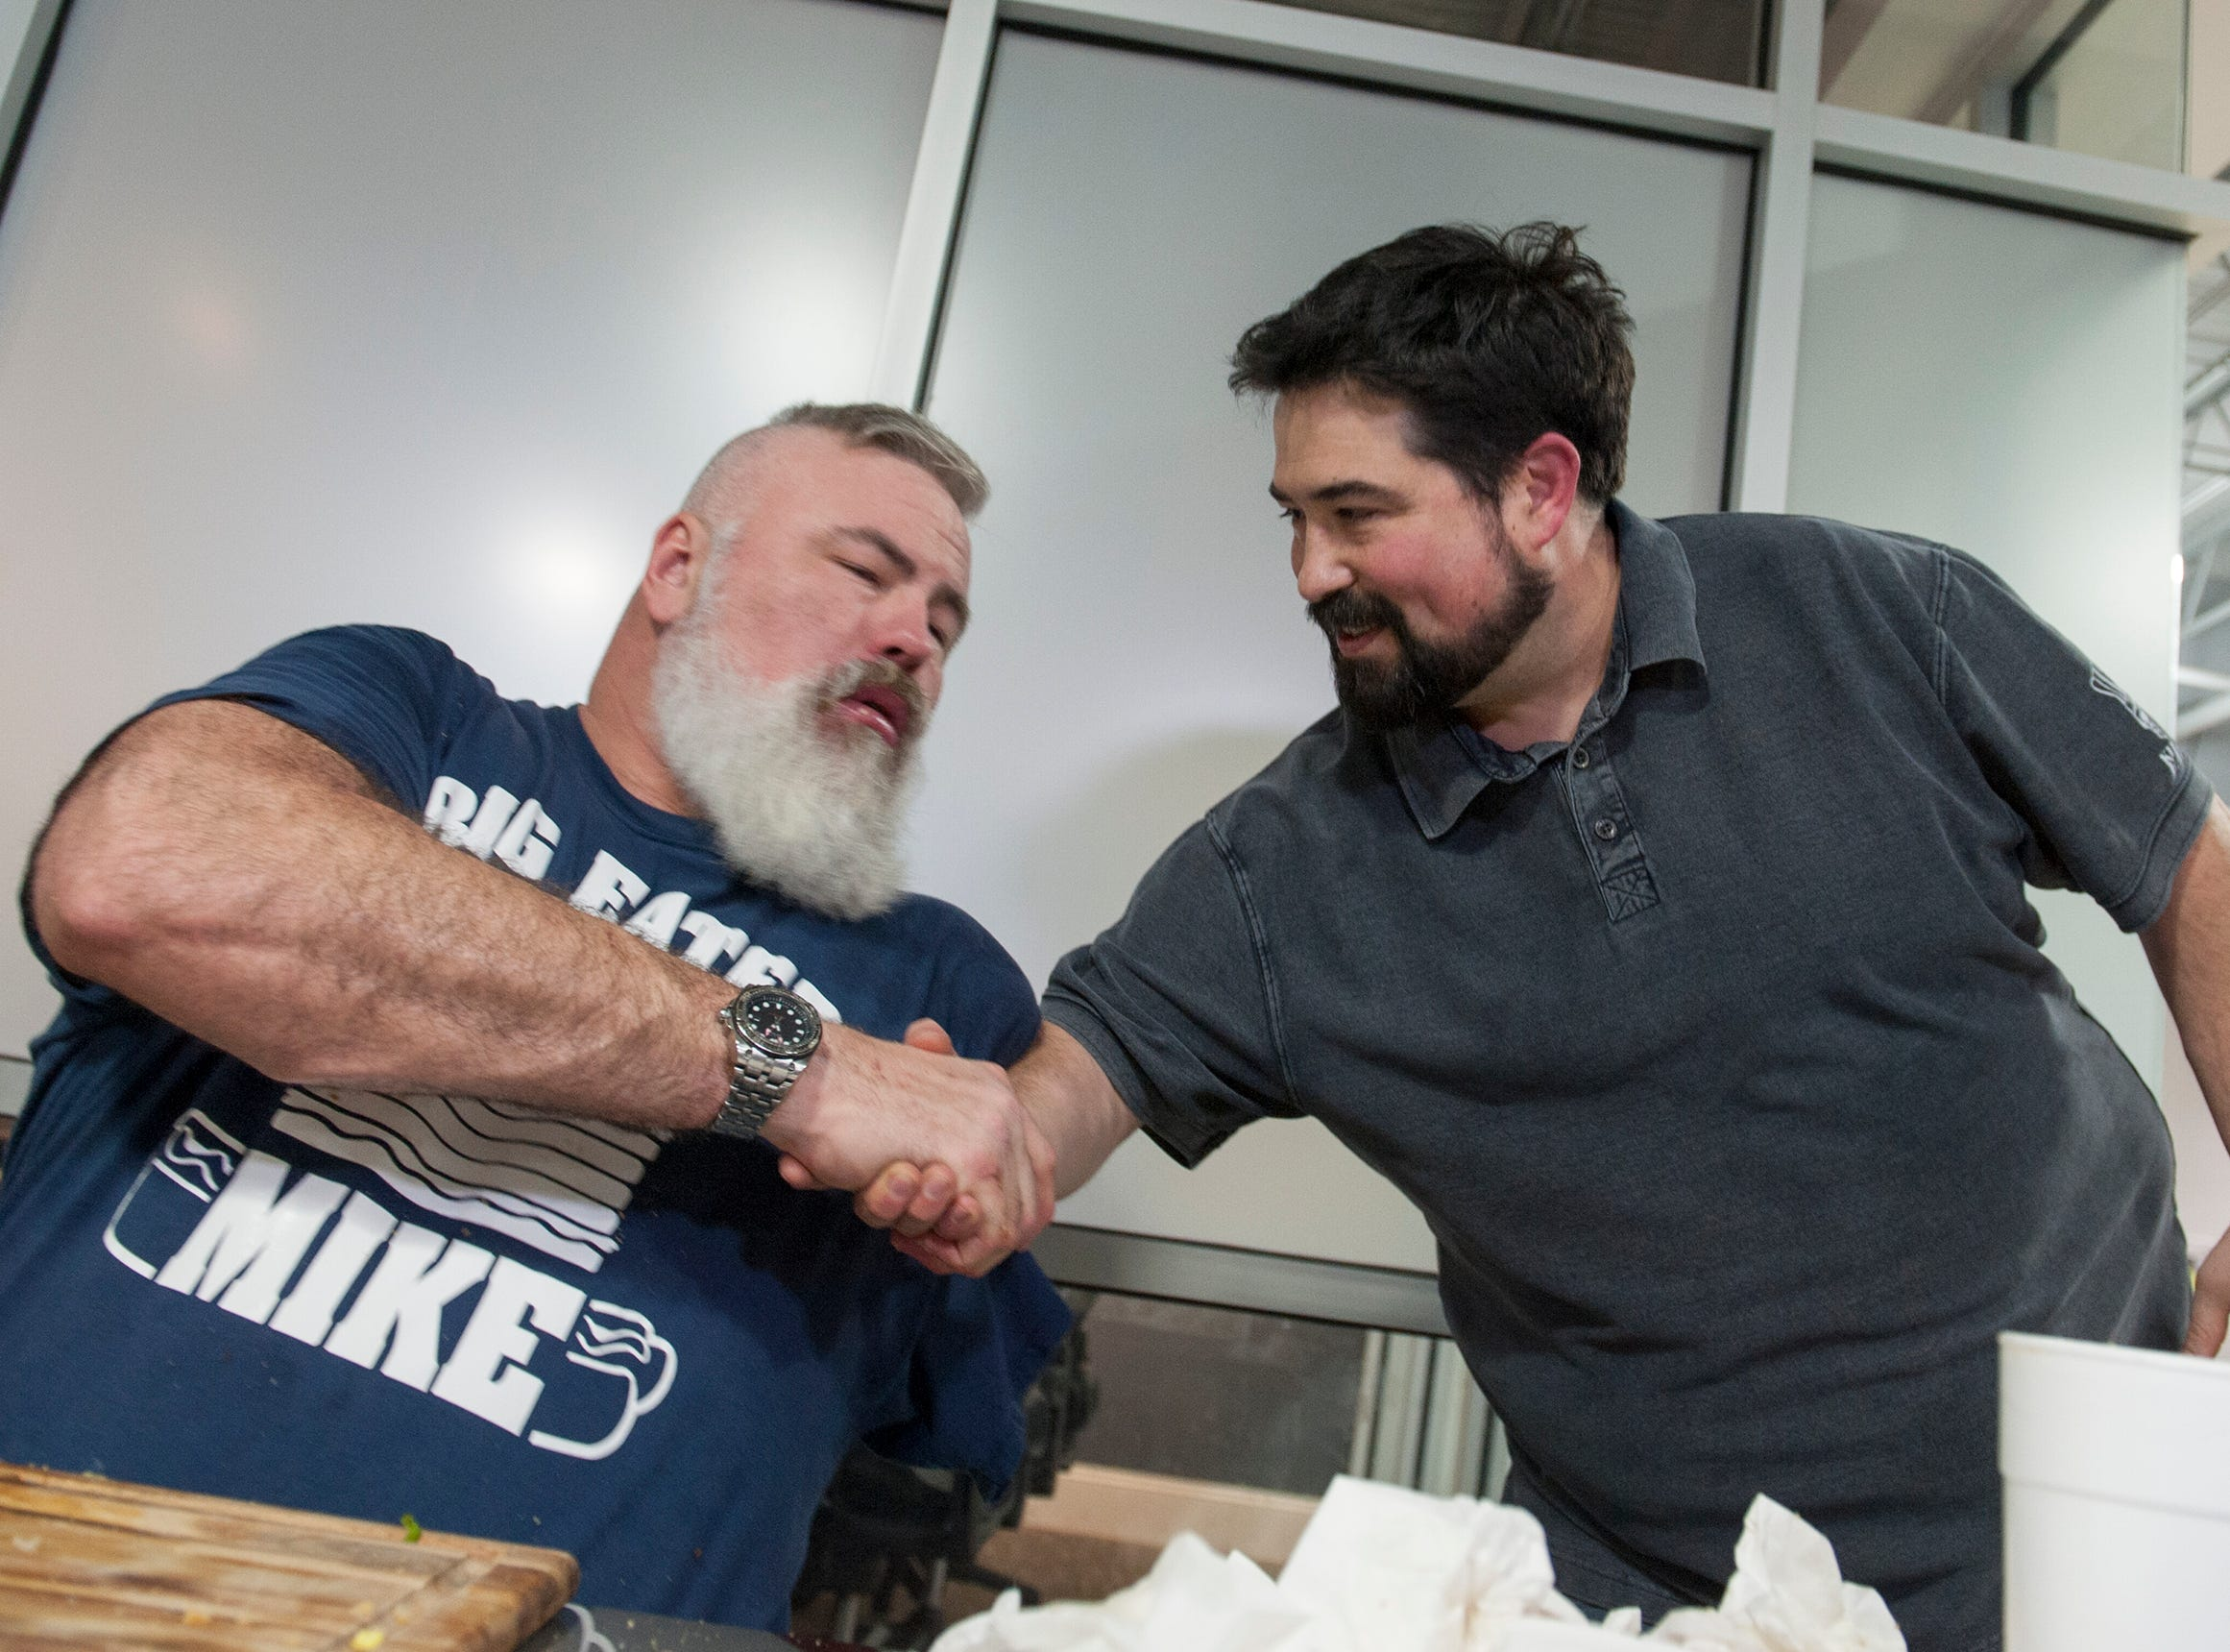 Mike Whities of Brandon, also known as Big Eater Mike, celebrates winning Roosters' first Stupid Burger Challenge Friday, Feb. 1, 2019, with Rooster's owner Nathan Glenn. Big Eater Mike tackled a 6-pound, 8-ounce platter of burger and fries within 30 minutes at the Fondren restaurant.